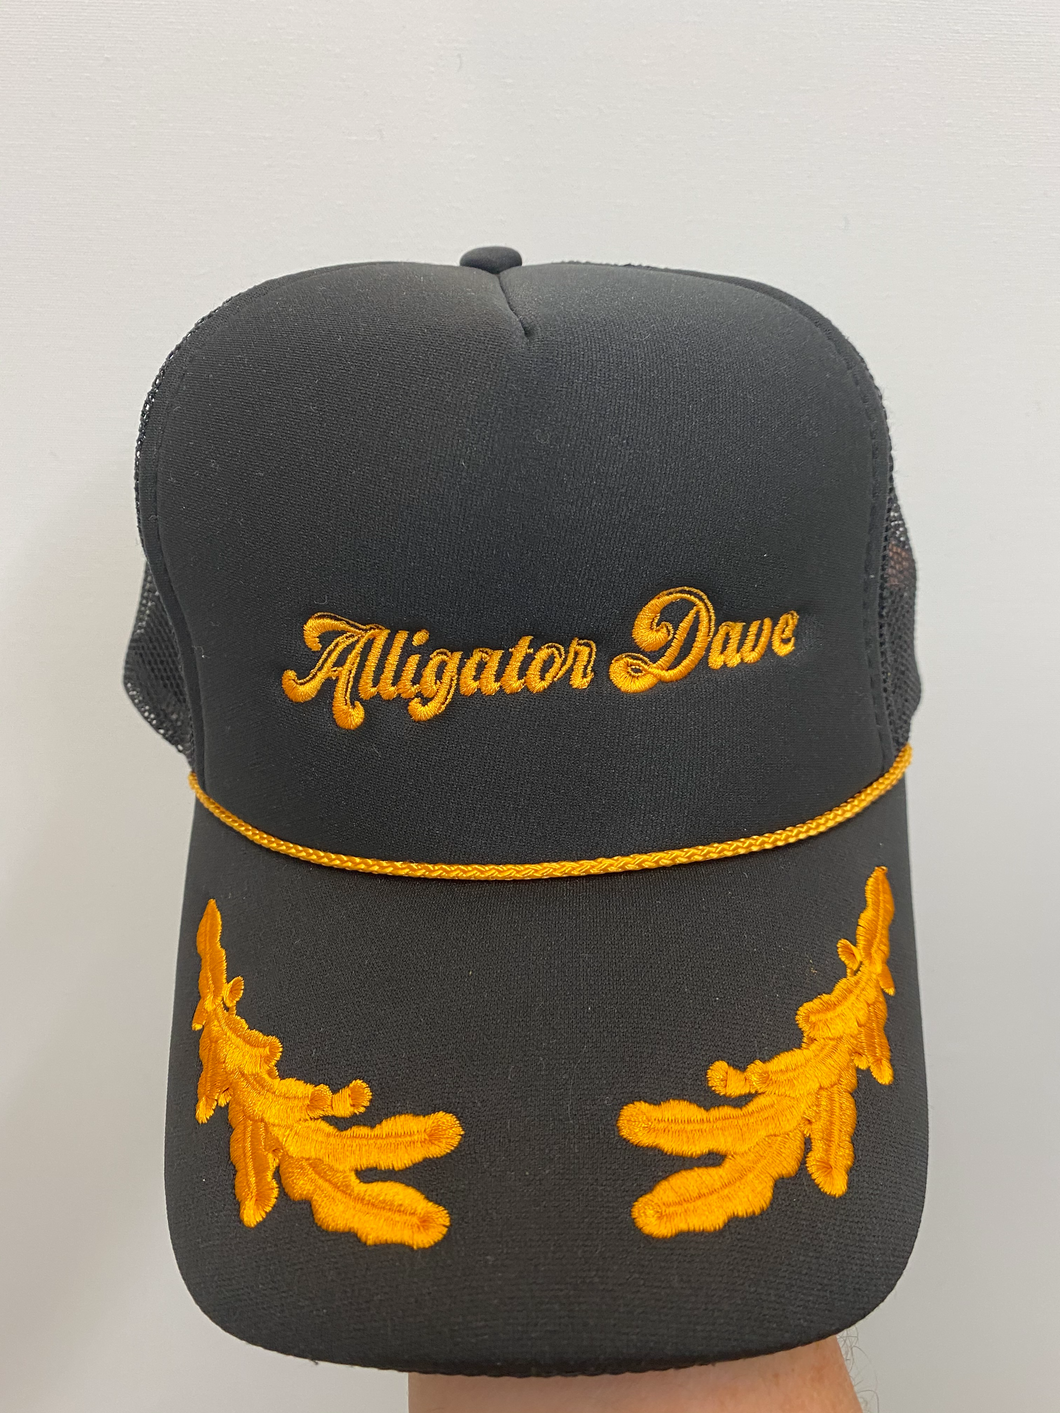 Alligator Dave Trucker Hat!